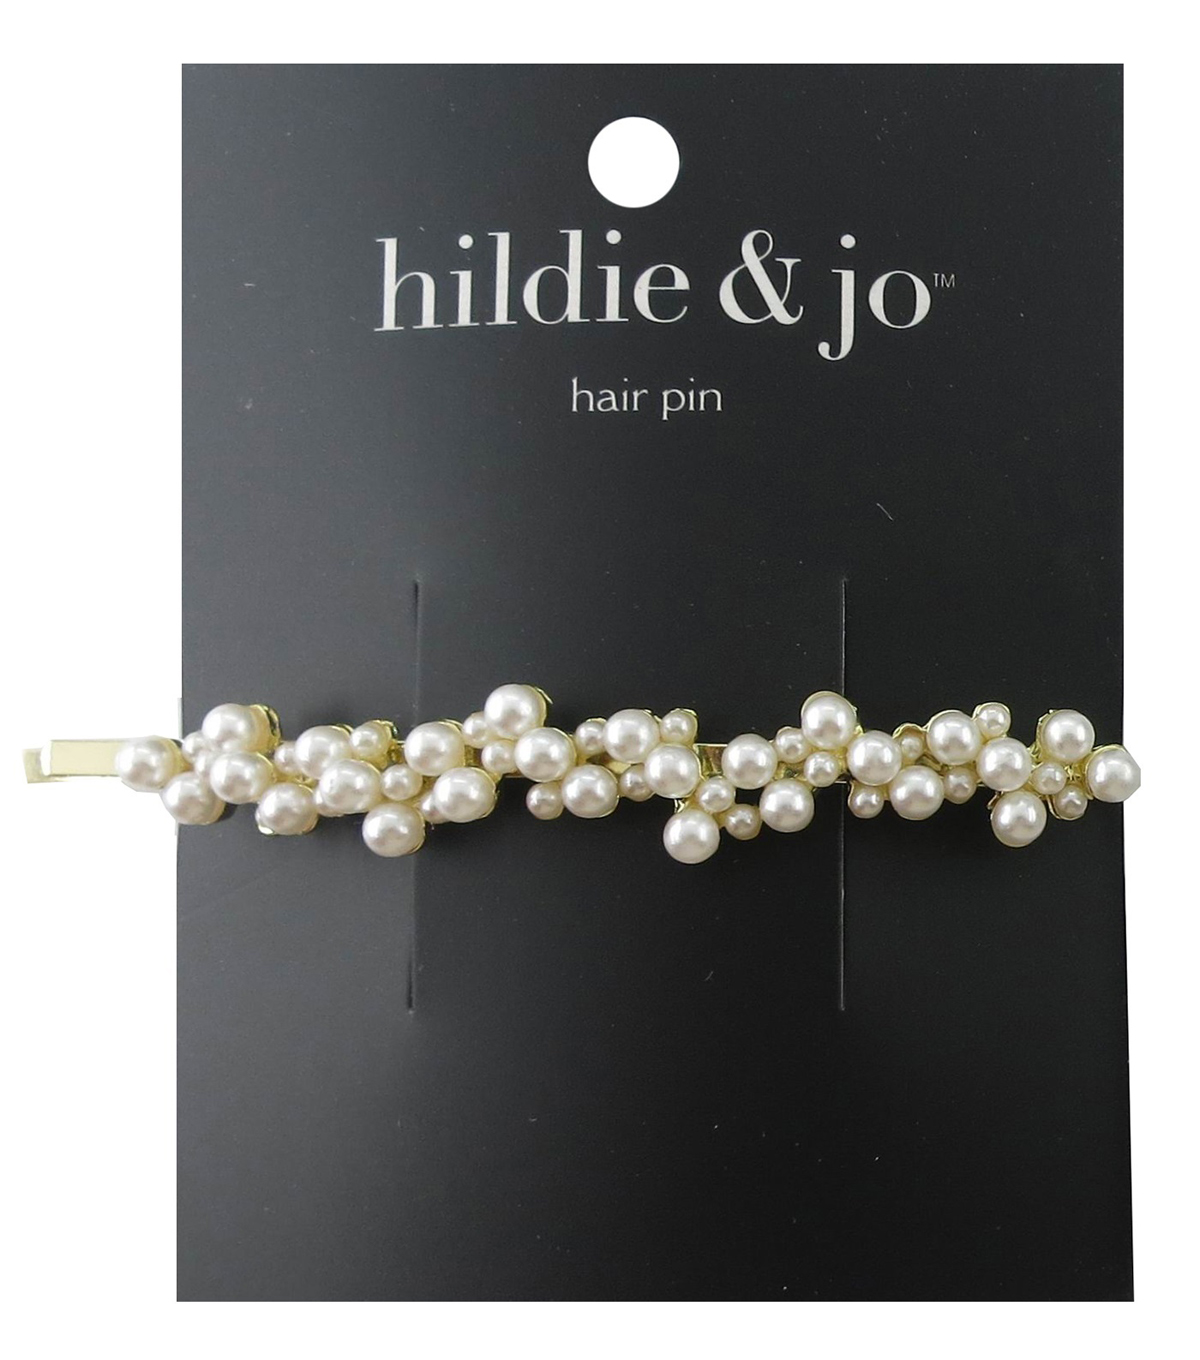 hildie & jo Gold Hair Pin-Pearl Cluster